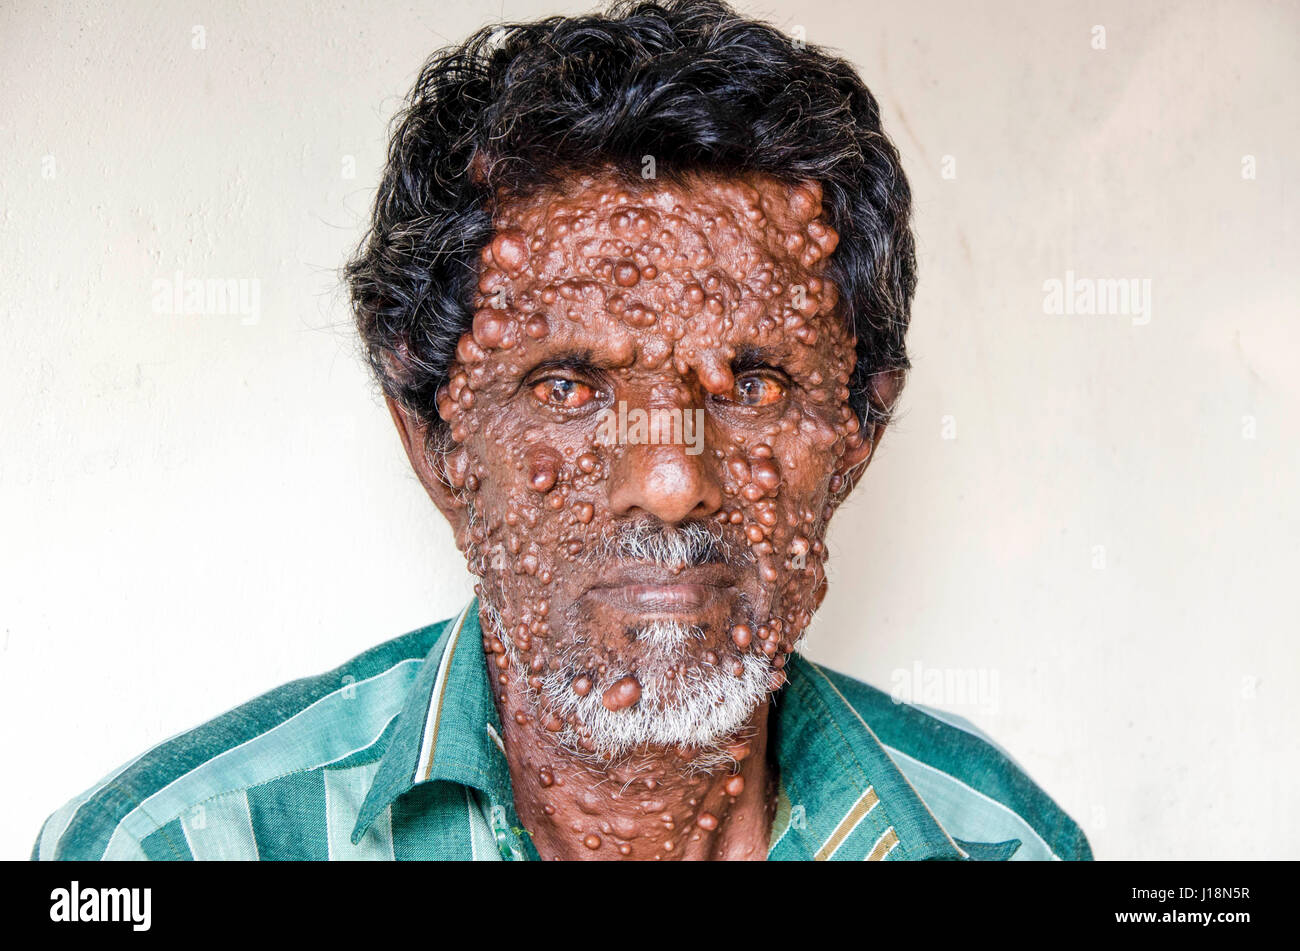 Man with big boils on face, kochi, kerala, india, asia Stock Photo